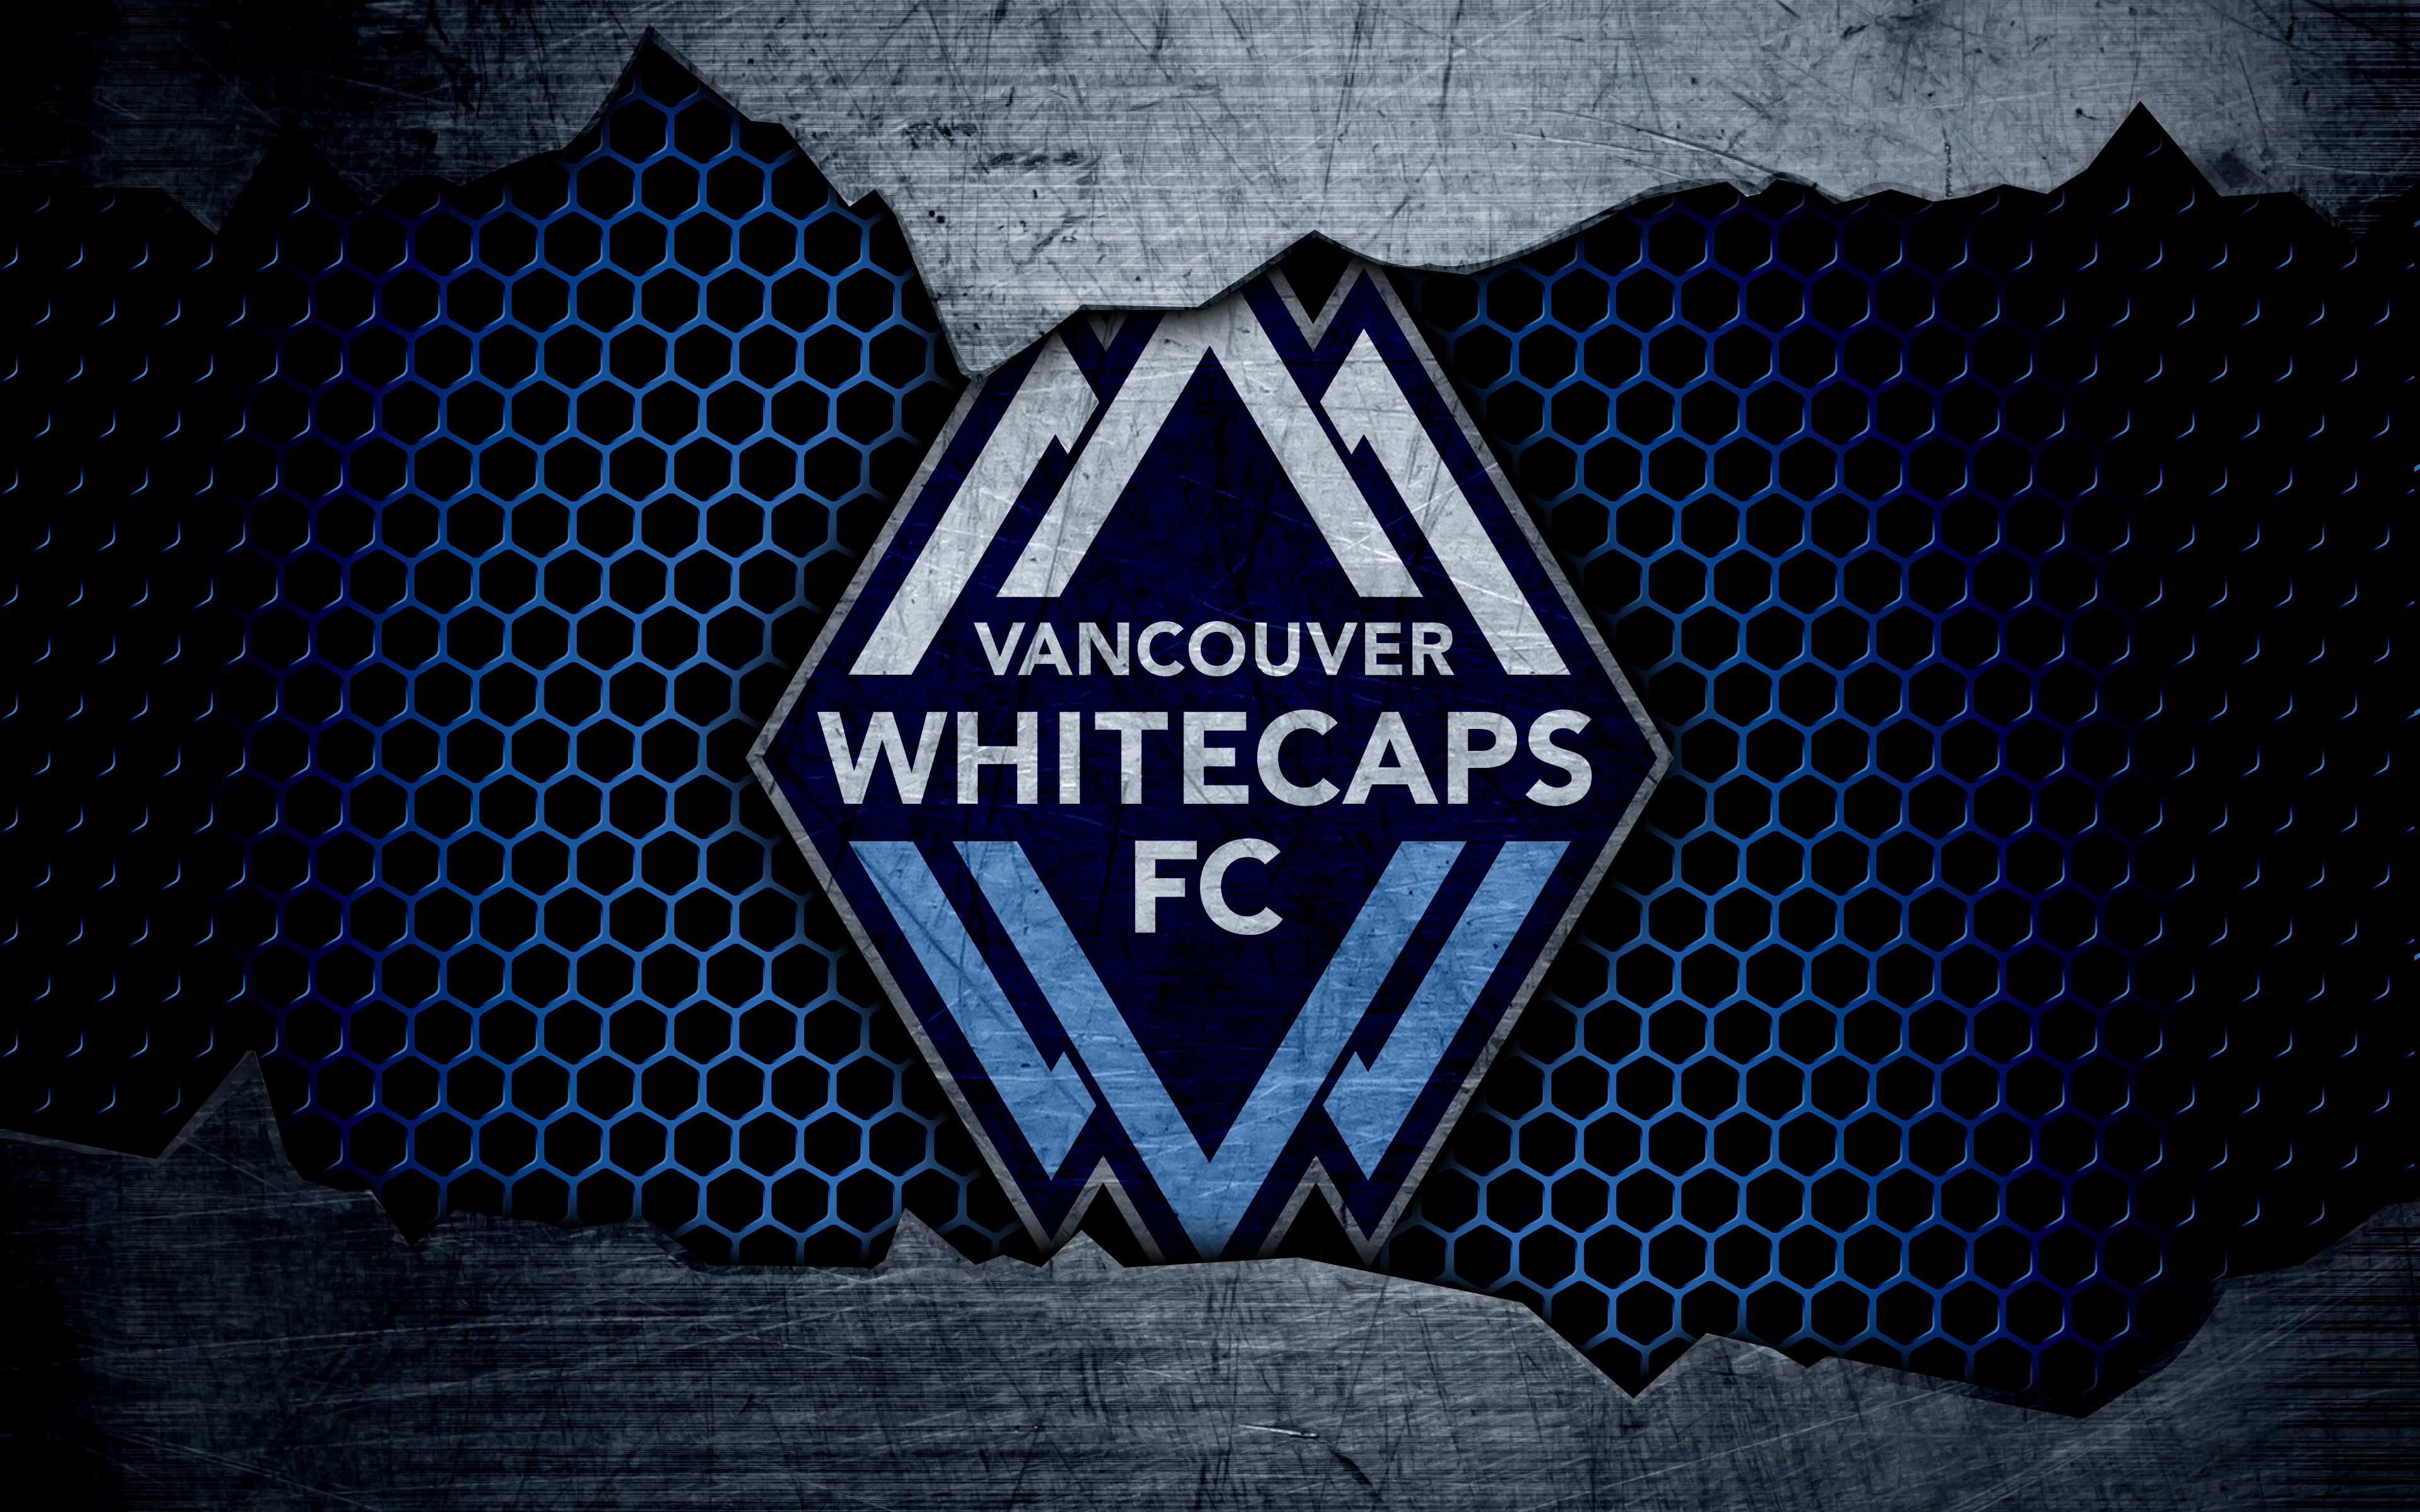 Vancouver Whitecaps FC 4k Ultra HD Wallpaper Background Image 3840x2400